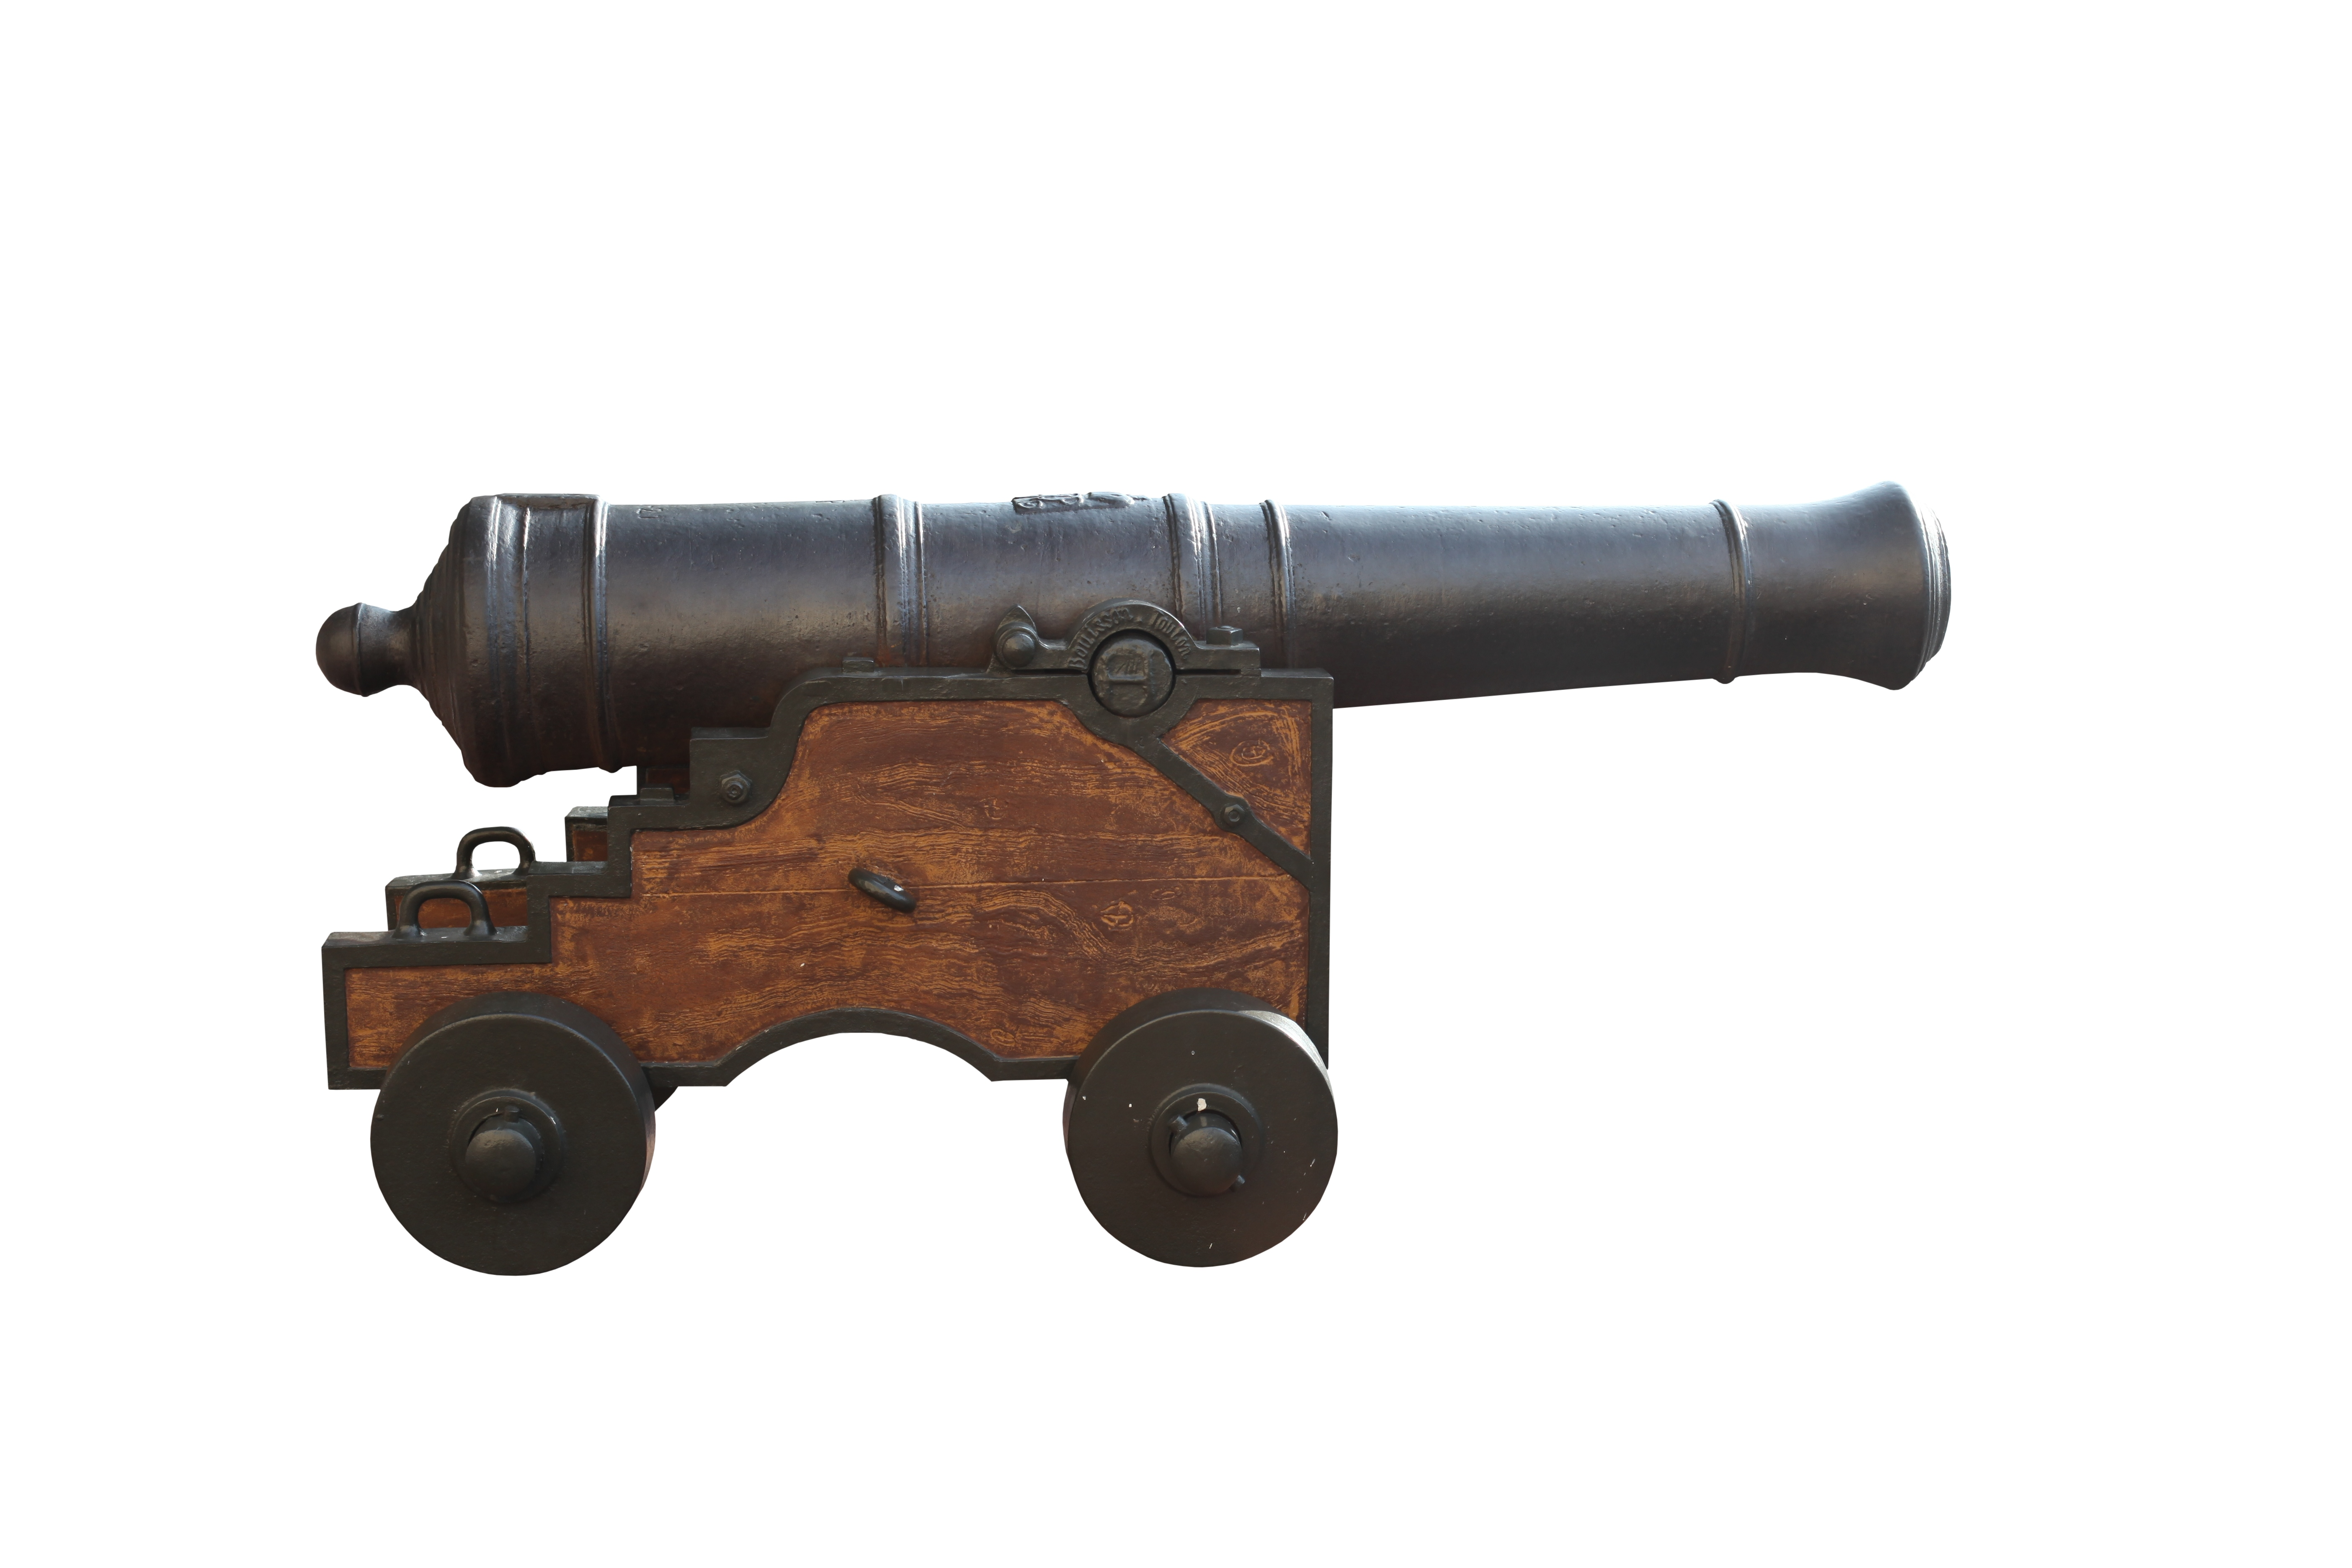 Interestingly Strange Inventions Of Past 22 Pics together with Traditions Trapper Muzzleloading Pistol 50 Caliber Flint 975 Blued Barrel Select Hardwood Stock besides Unsolved Mysteries Of The Wild West moreover The Top 10 Survival Supplies That Can Save Your Life furthermore File Lupara. on 18th century revolver